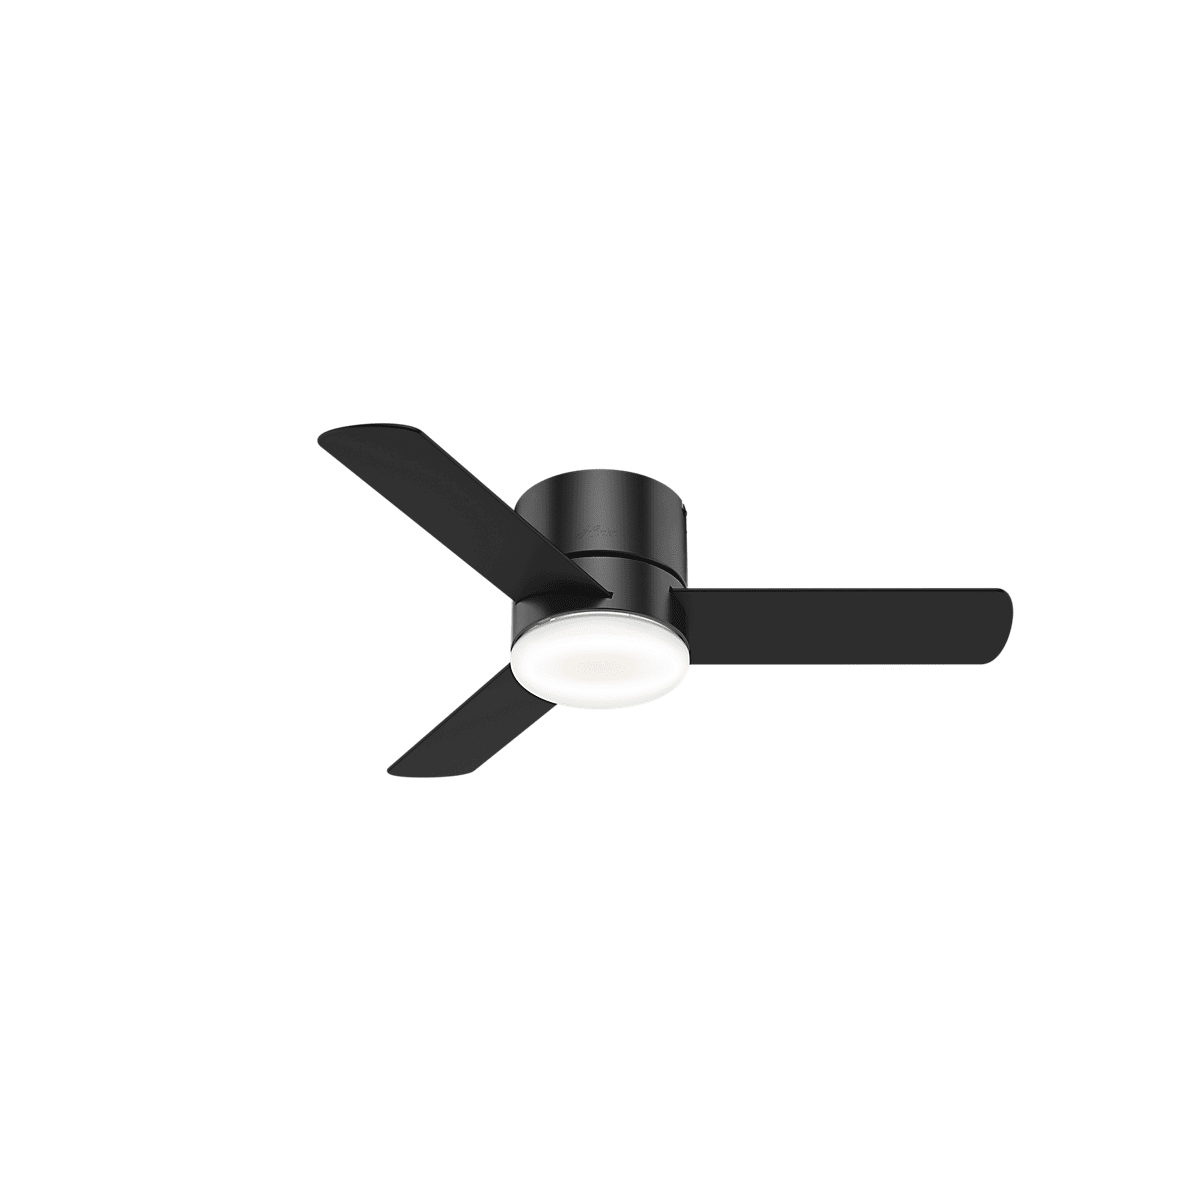 Hunter 59453 Matte Black Minimus 44 Hugger Ceiling Fan With Ac Induction Motor Remote Control And Led Light Kit Included Lightingdirect Com